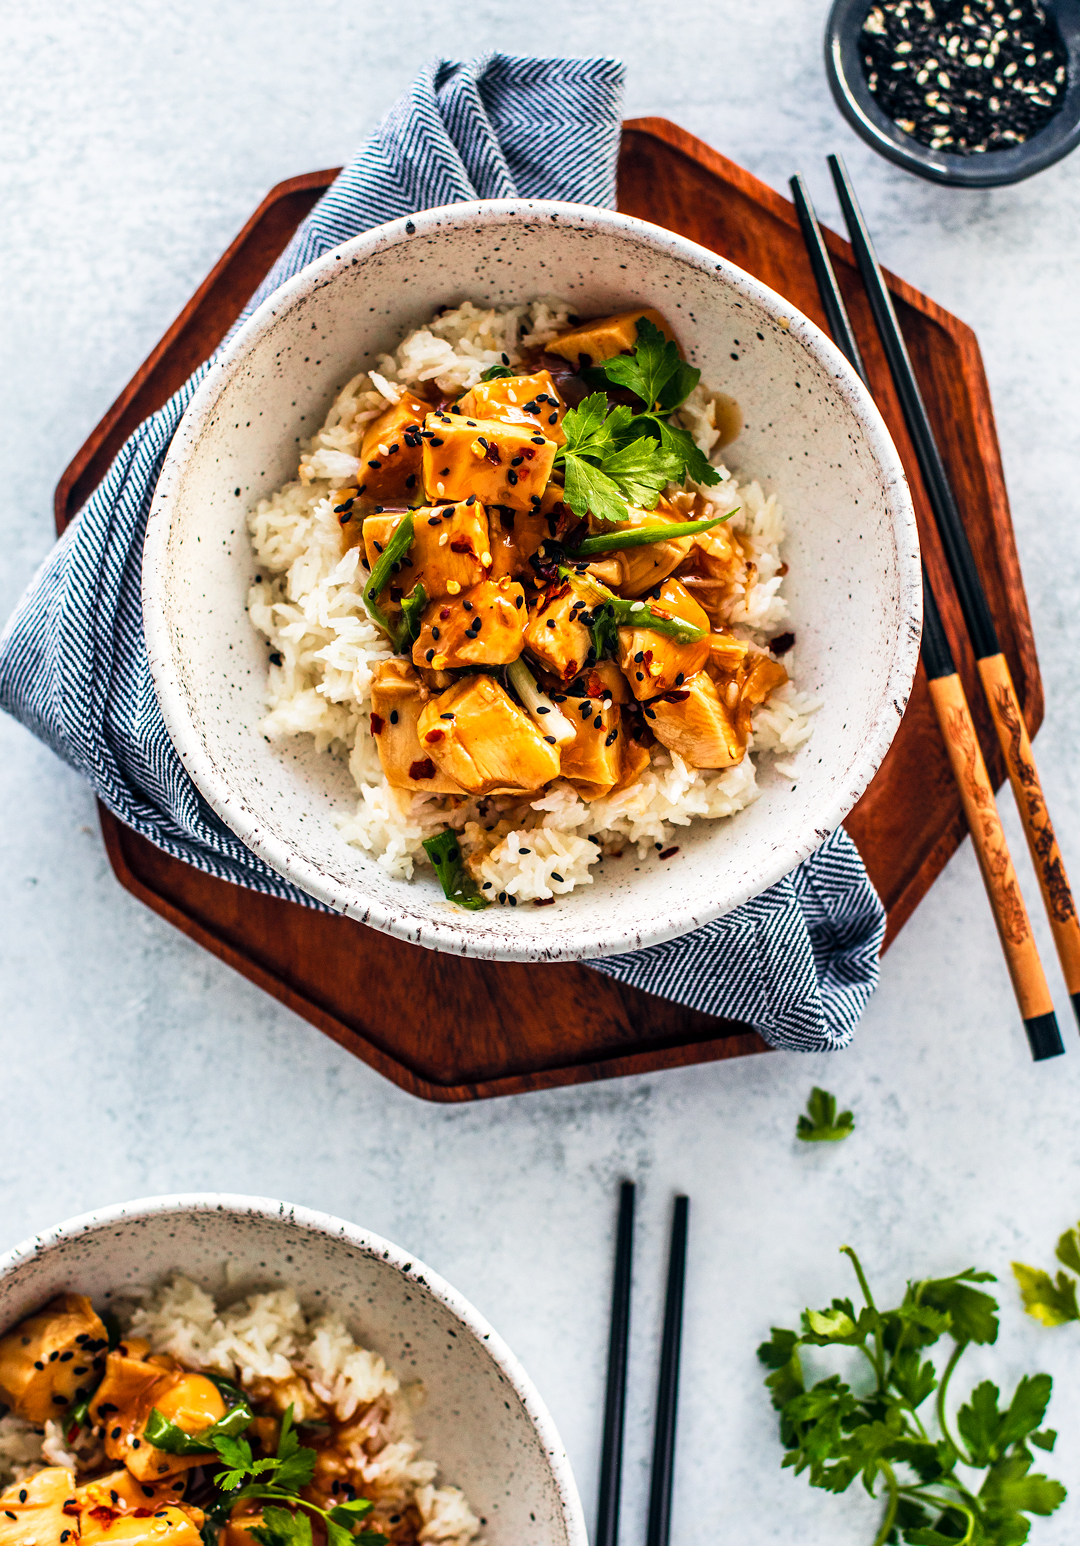 Overhead shot of bowl of rice topped with orange chicken, with chopsticks and fresh parsley beside the bowl.